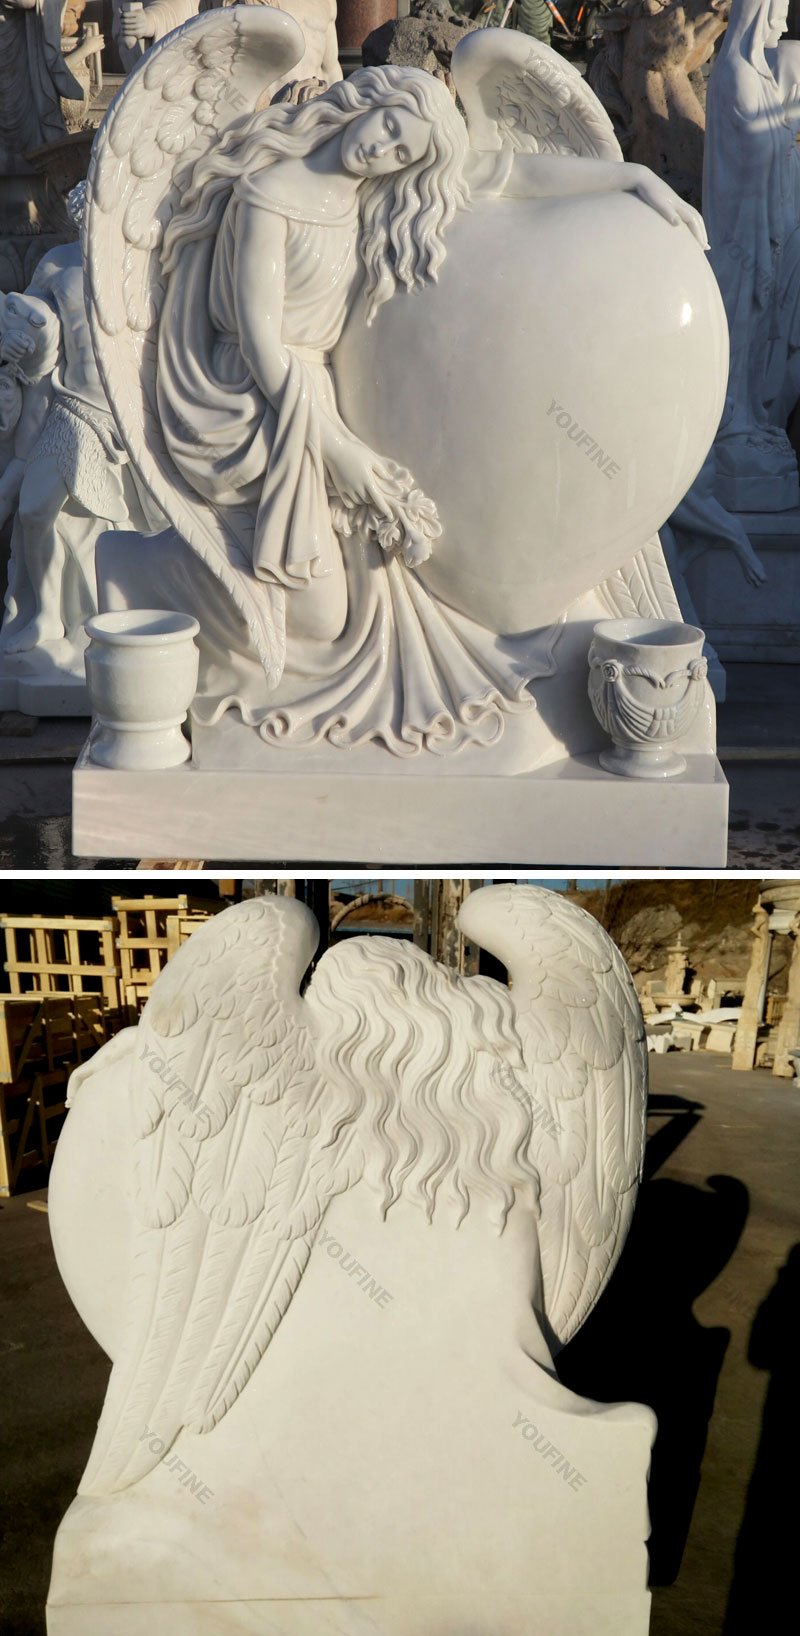 White stone preying angel grave monument markers costs